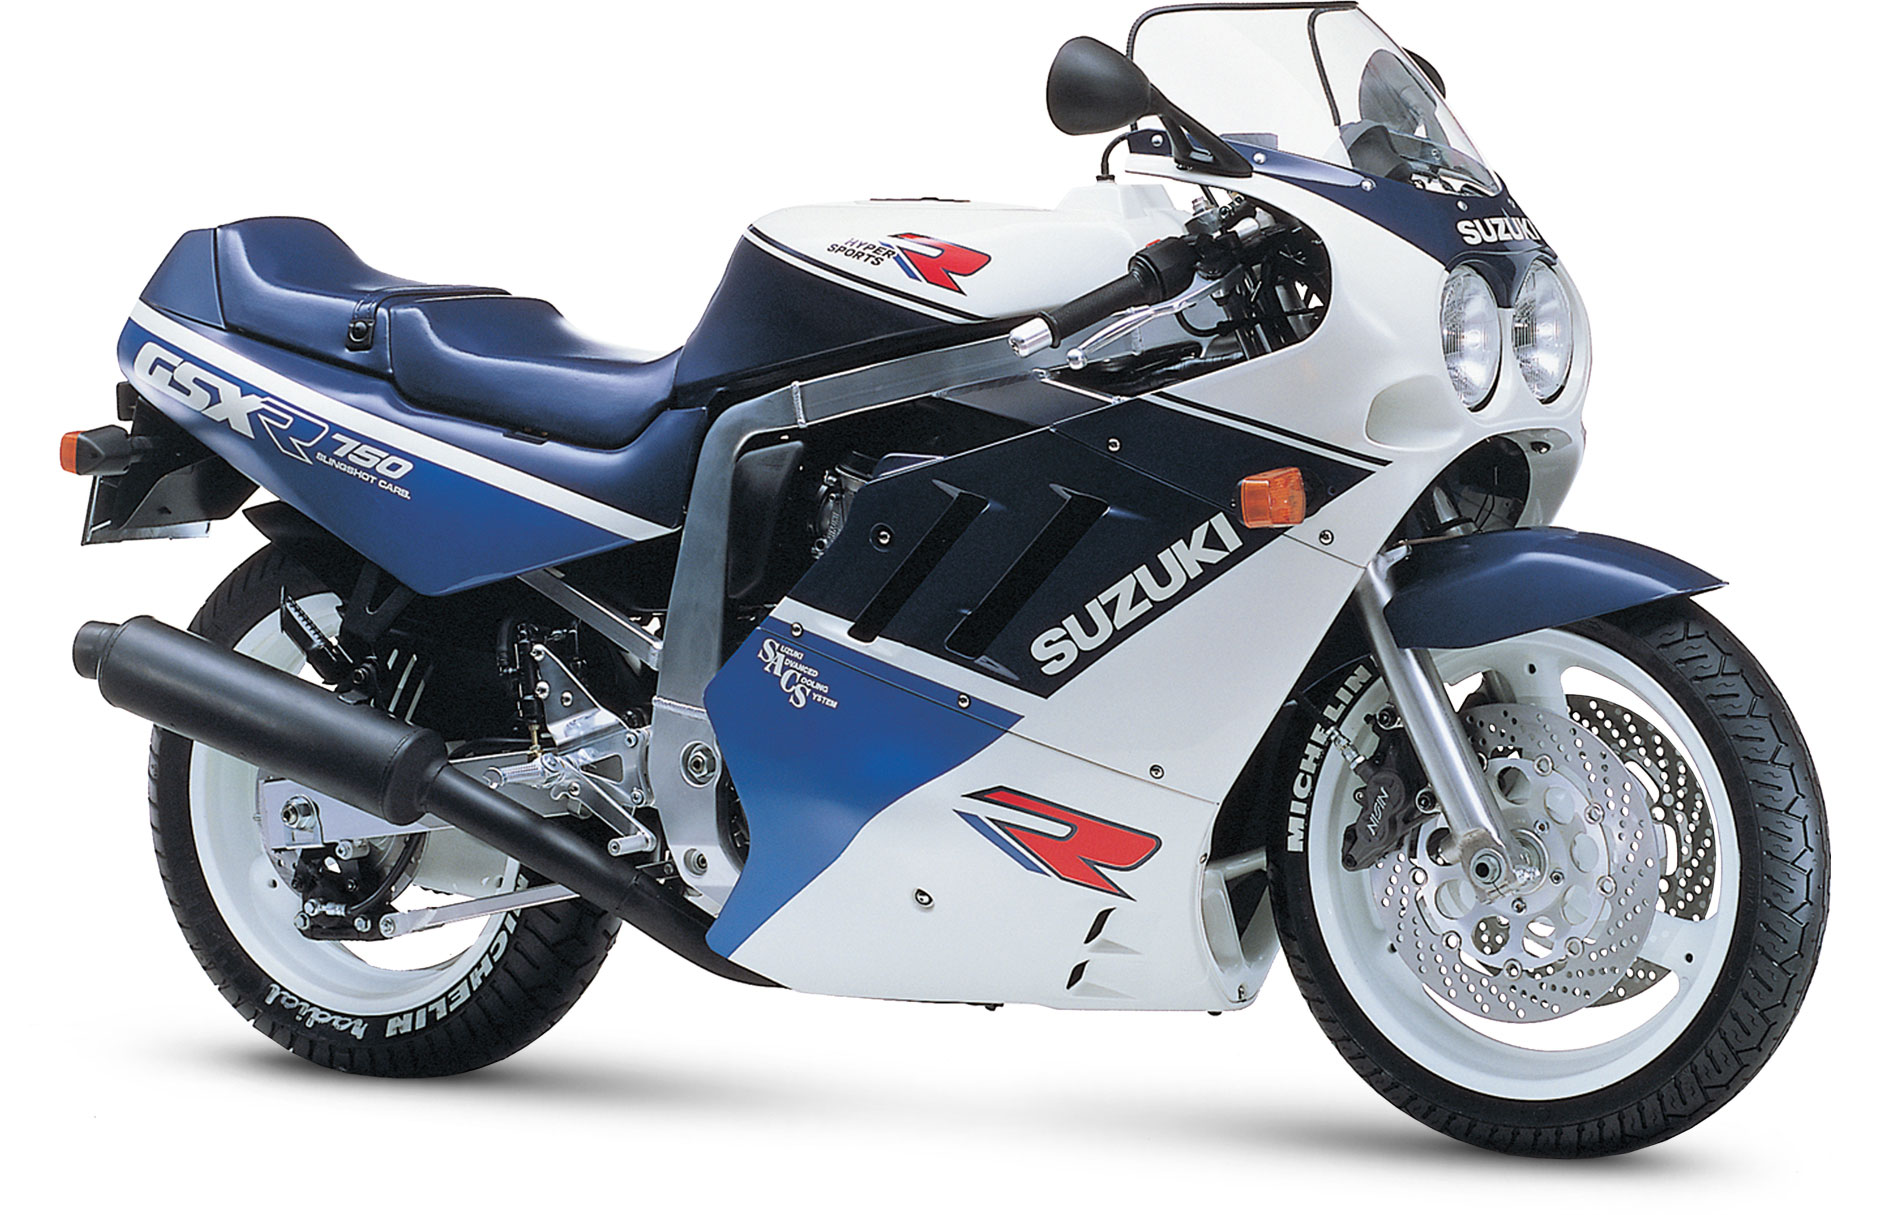 Suzuki Gsx R 750 1988 Datasheet Service Manual And